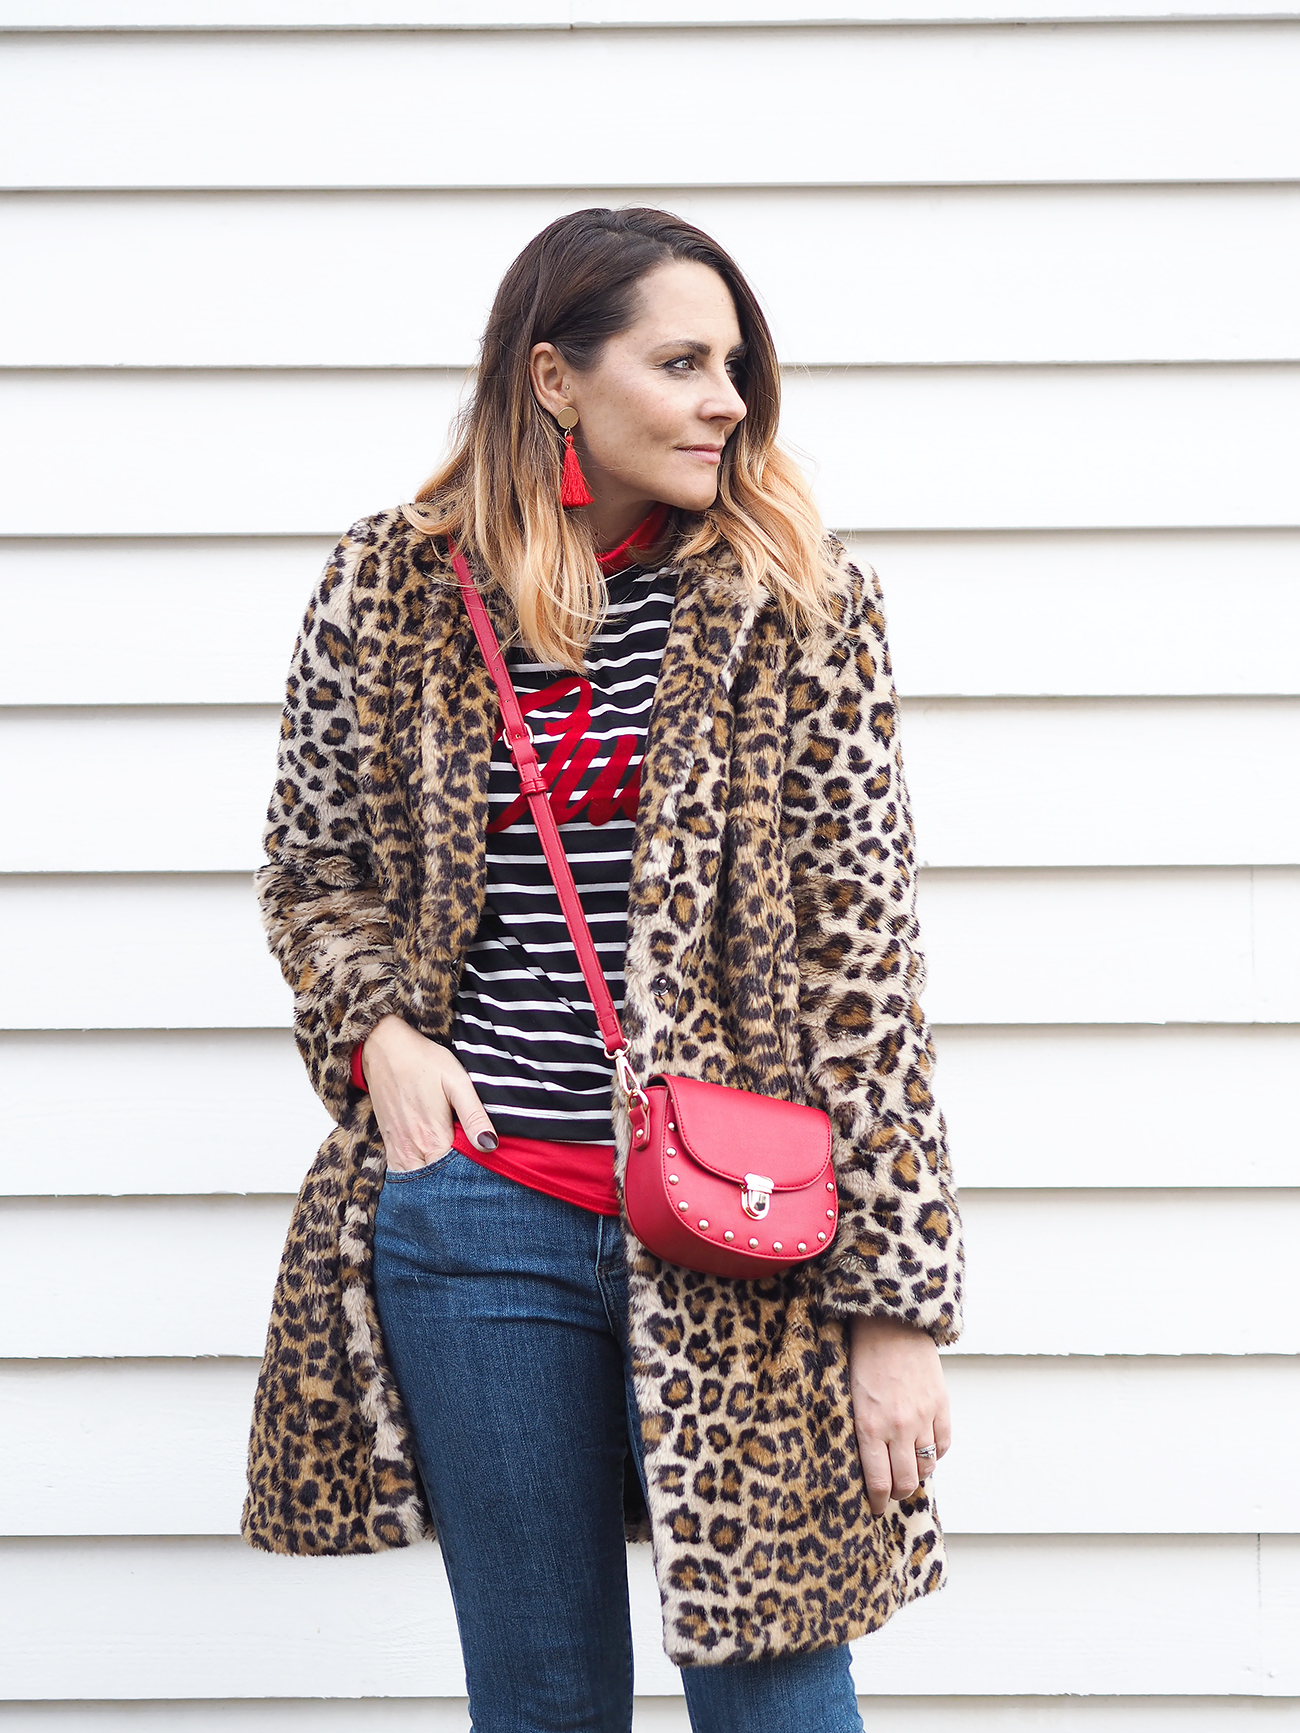 wearing clashing prints leopard and stripes